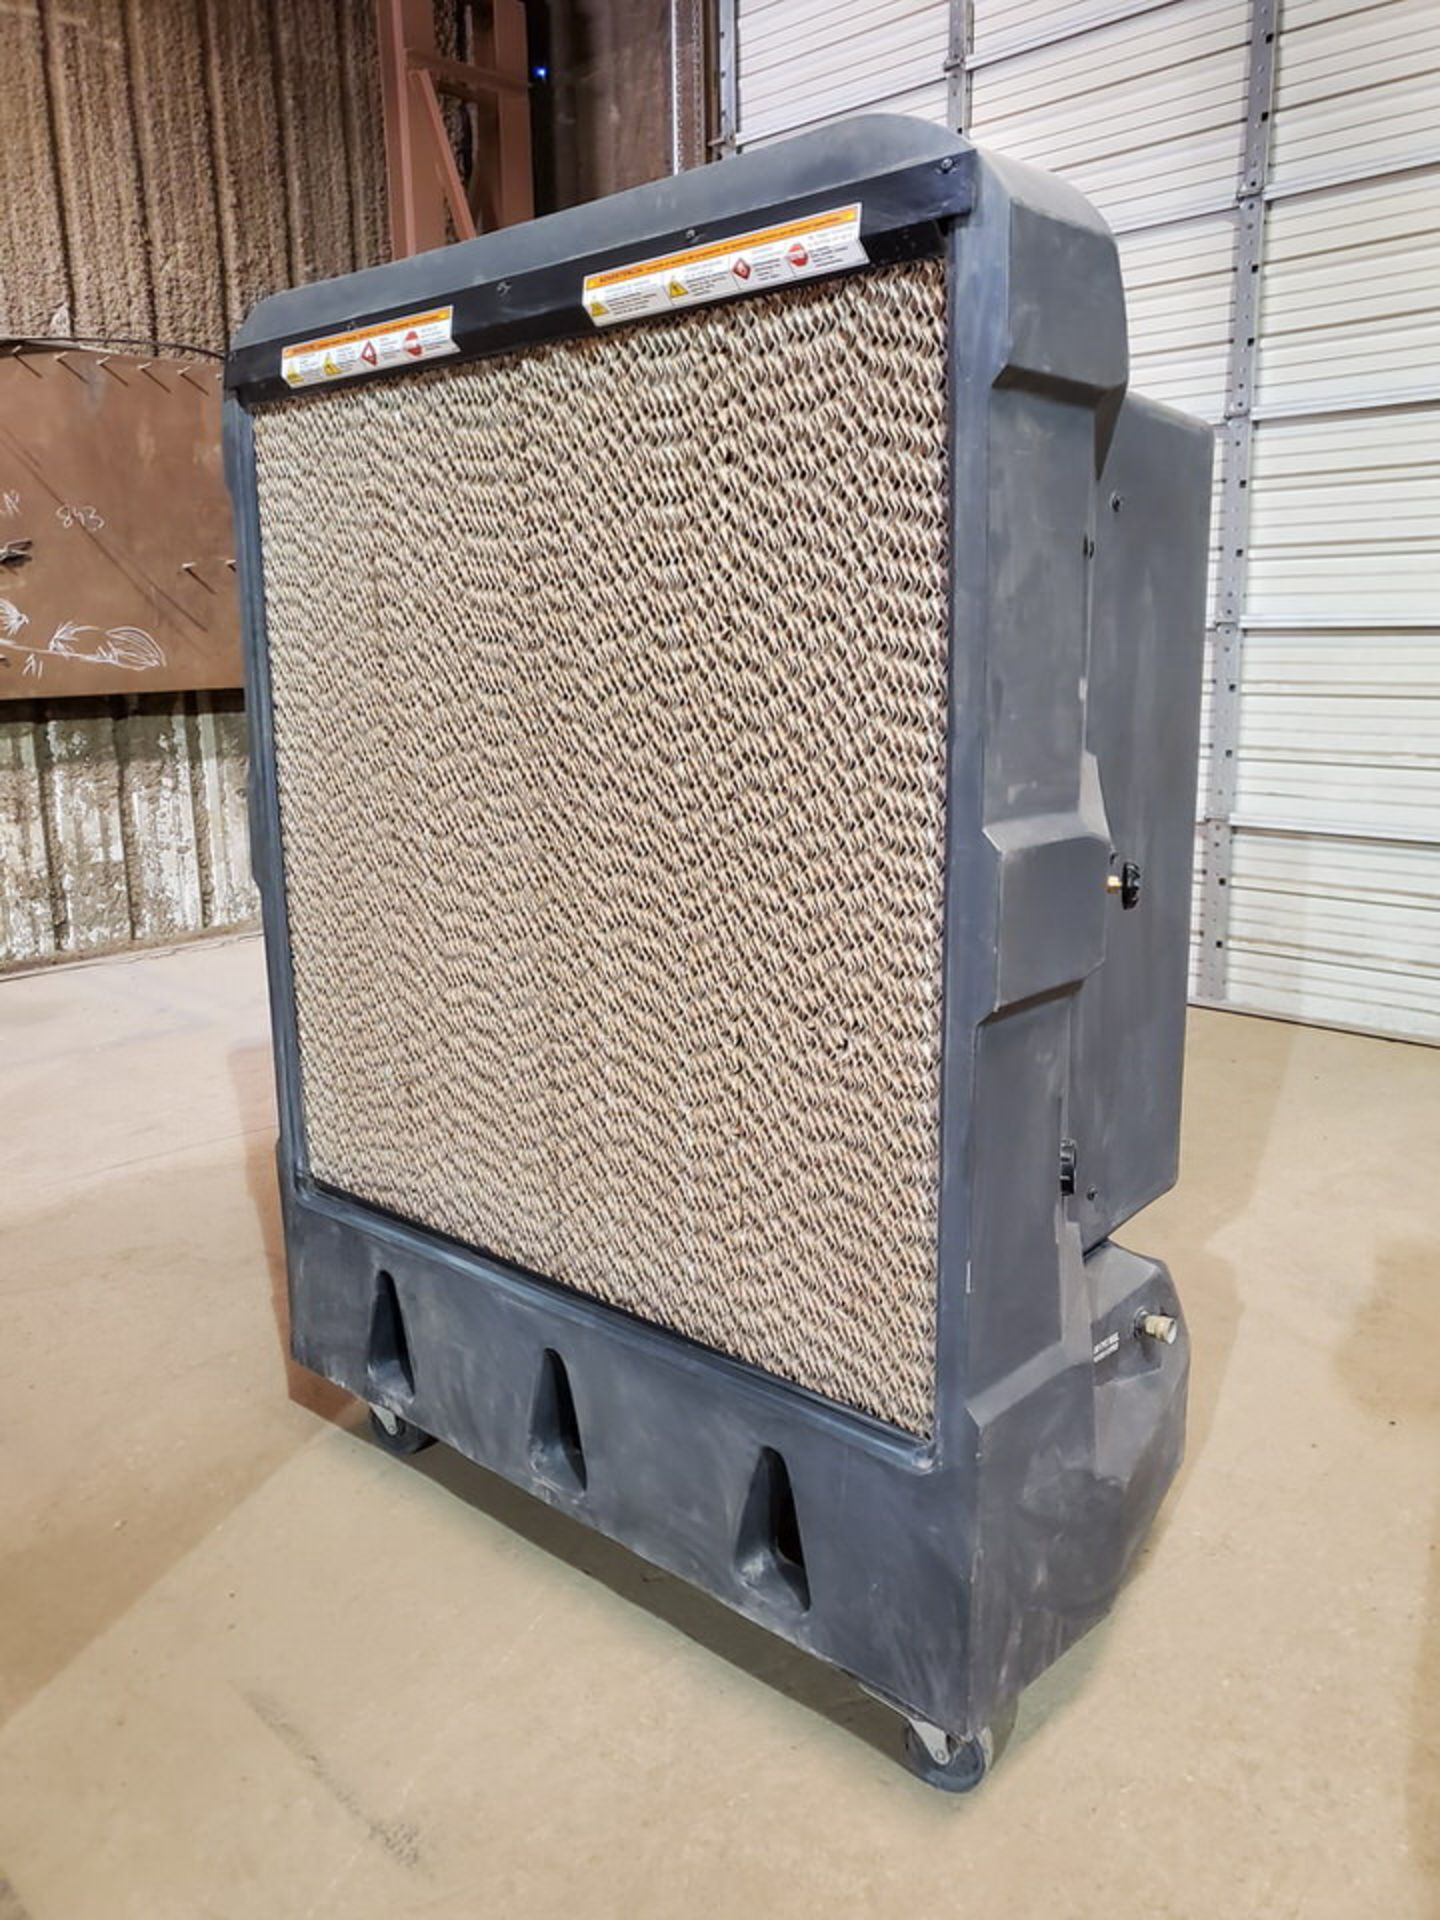 Portacool Cyclone 160 Portable Evaporative Cooler 115V, 60HZ, 7.3A - Image 2 of 7